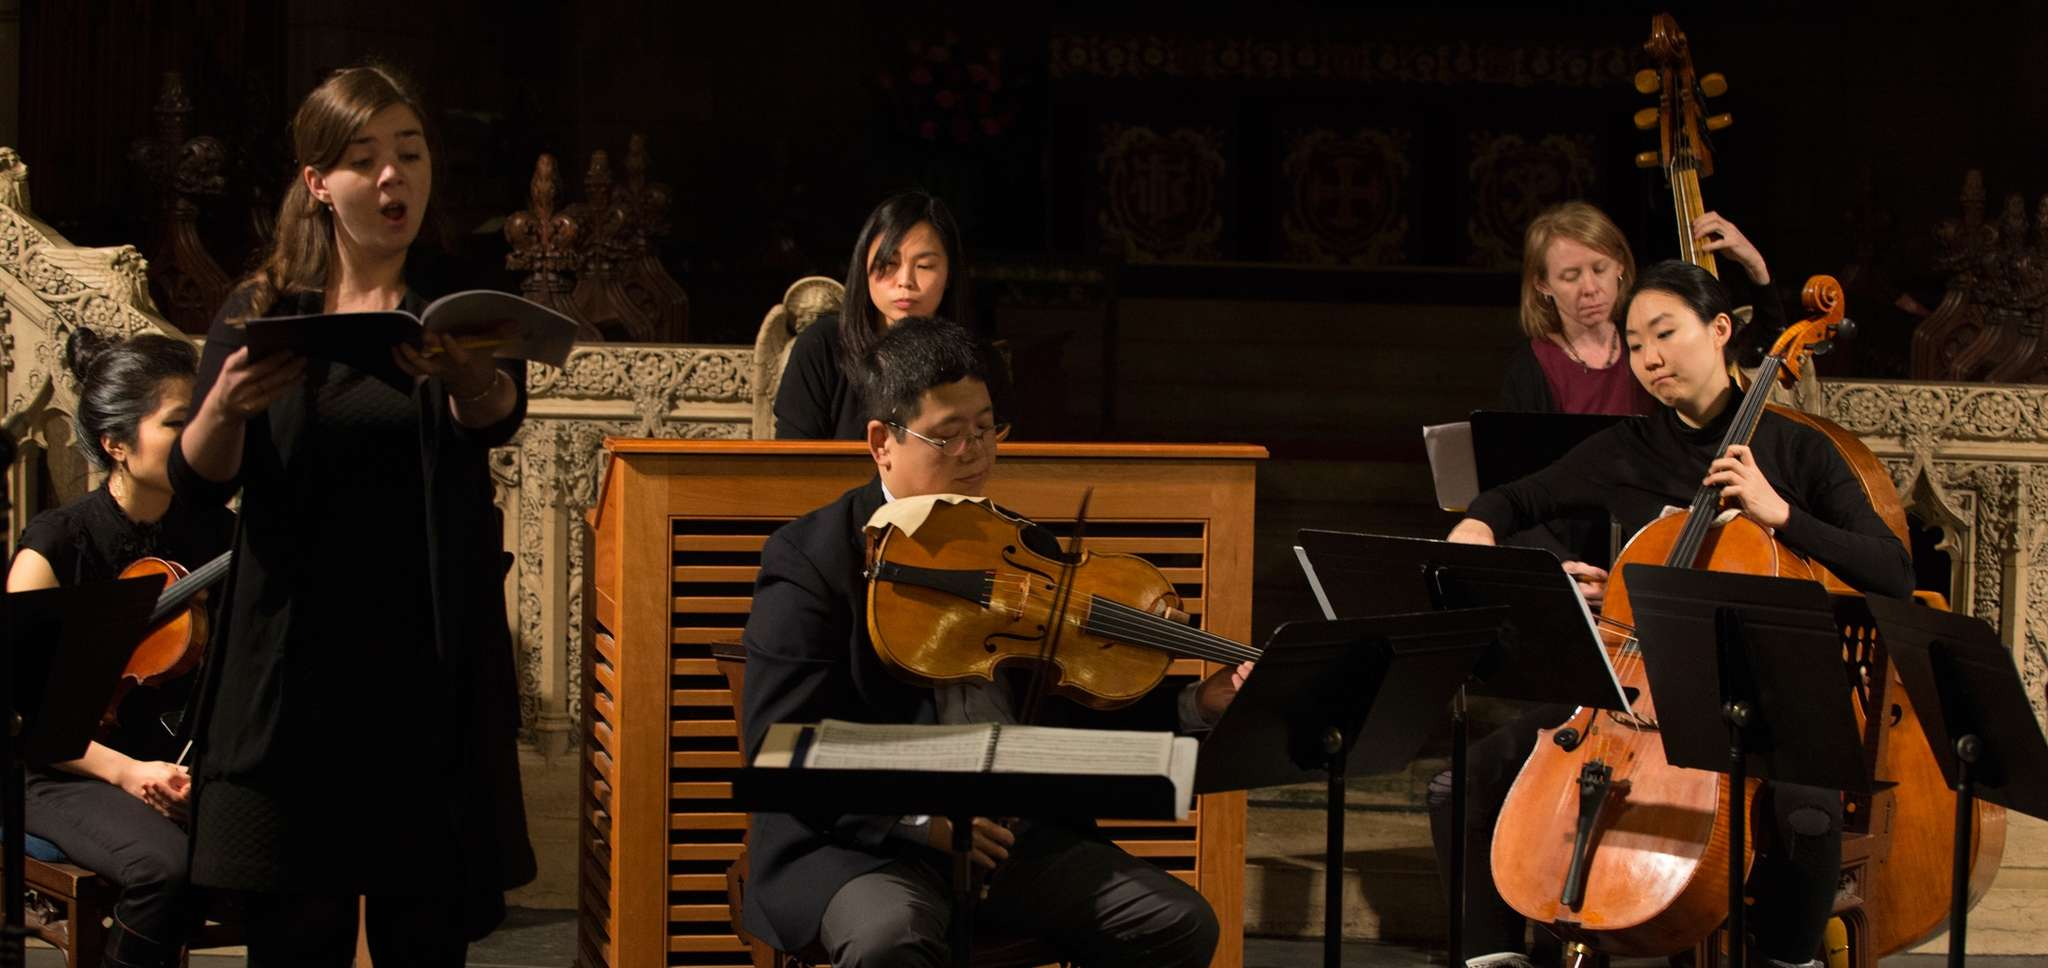 The Bach Gamut Ensemble during a 2014 performance in Philadelphia.